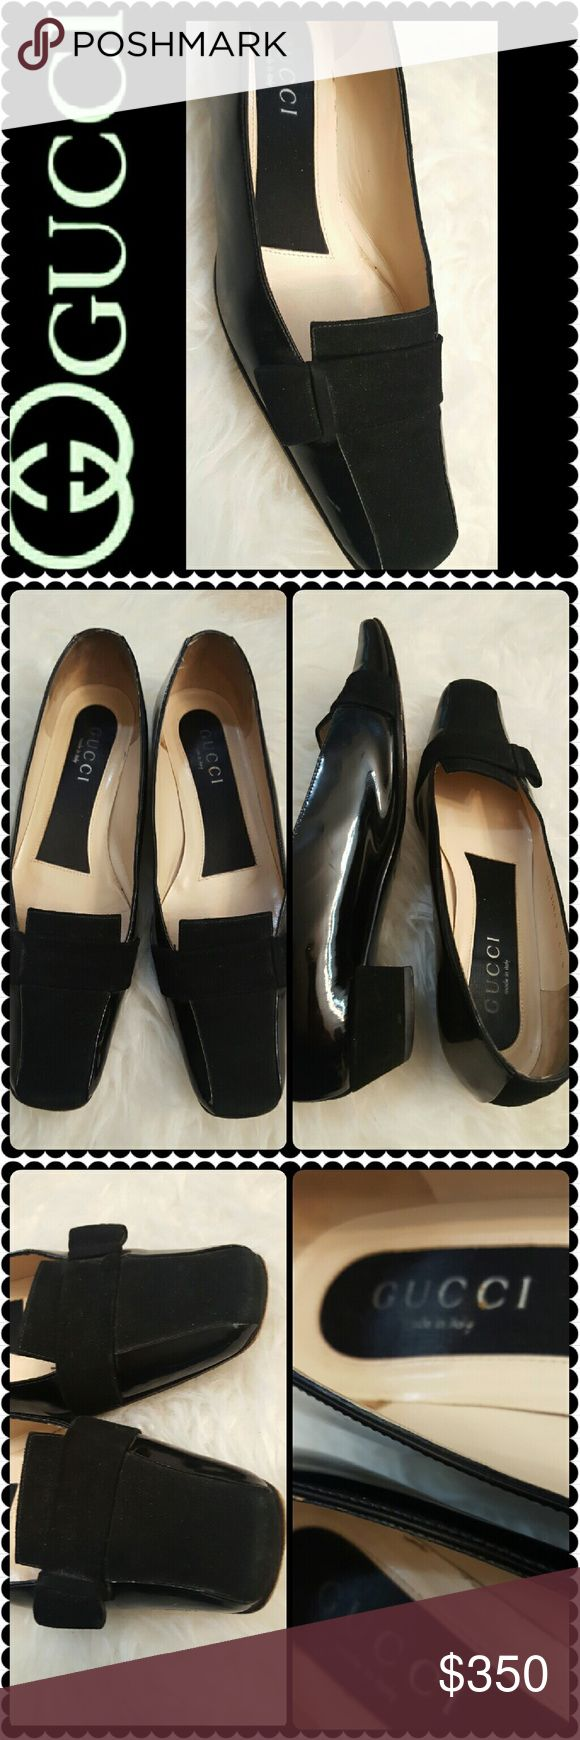 Gucci Leather Suede Pumps Gucci Designer Shoes, Black Patent Suede Leather Pumps with an Inch Stacked Heel, Gorgeous with Suede Accent at the Toe and a Suede Stripe Down the Heel!  Made in Italy in Size 6.5B, Used in Excellent Condition! A Gucci Classic Pair! Gucci Shoes